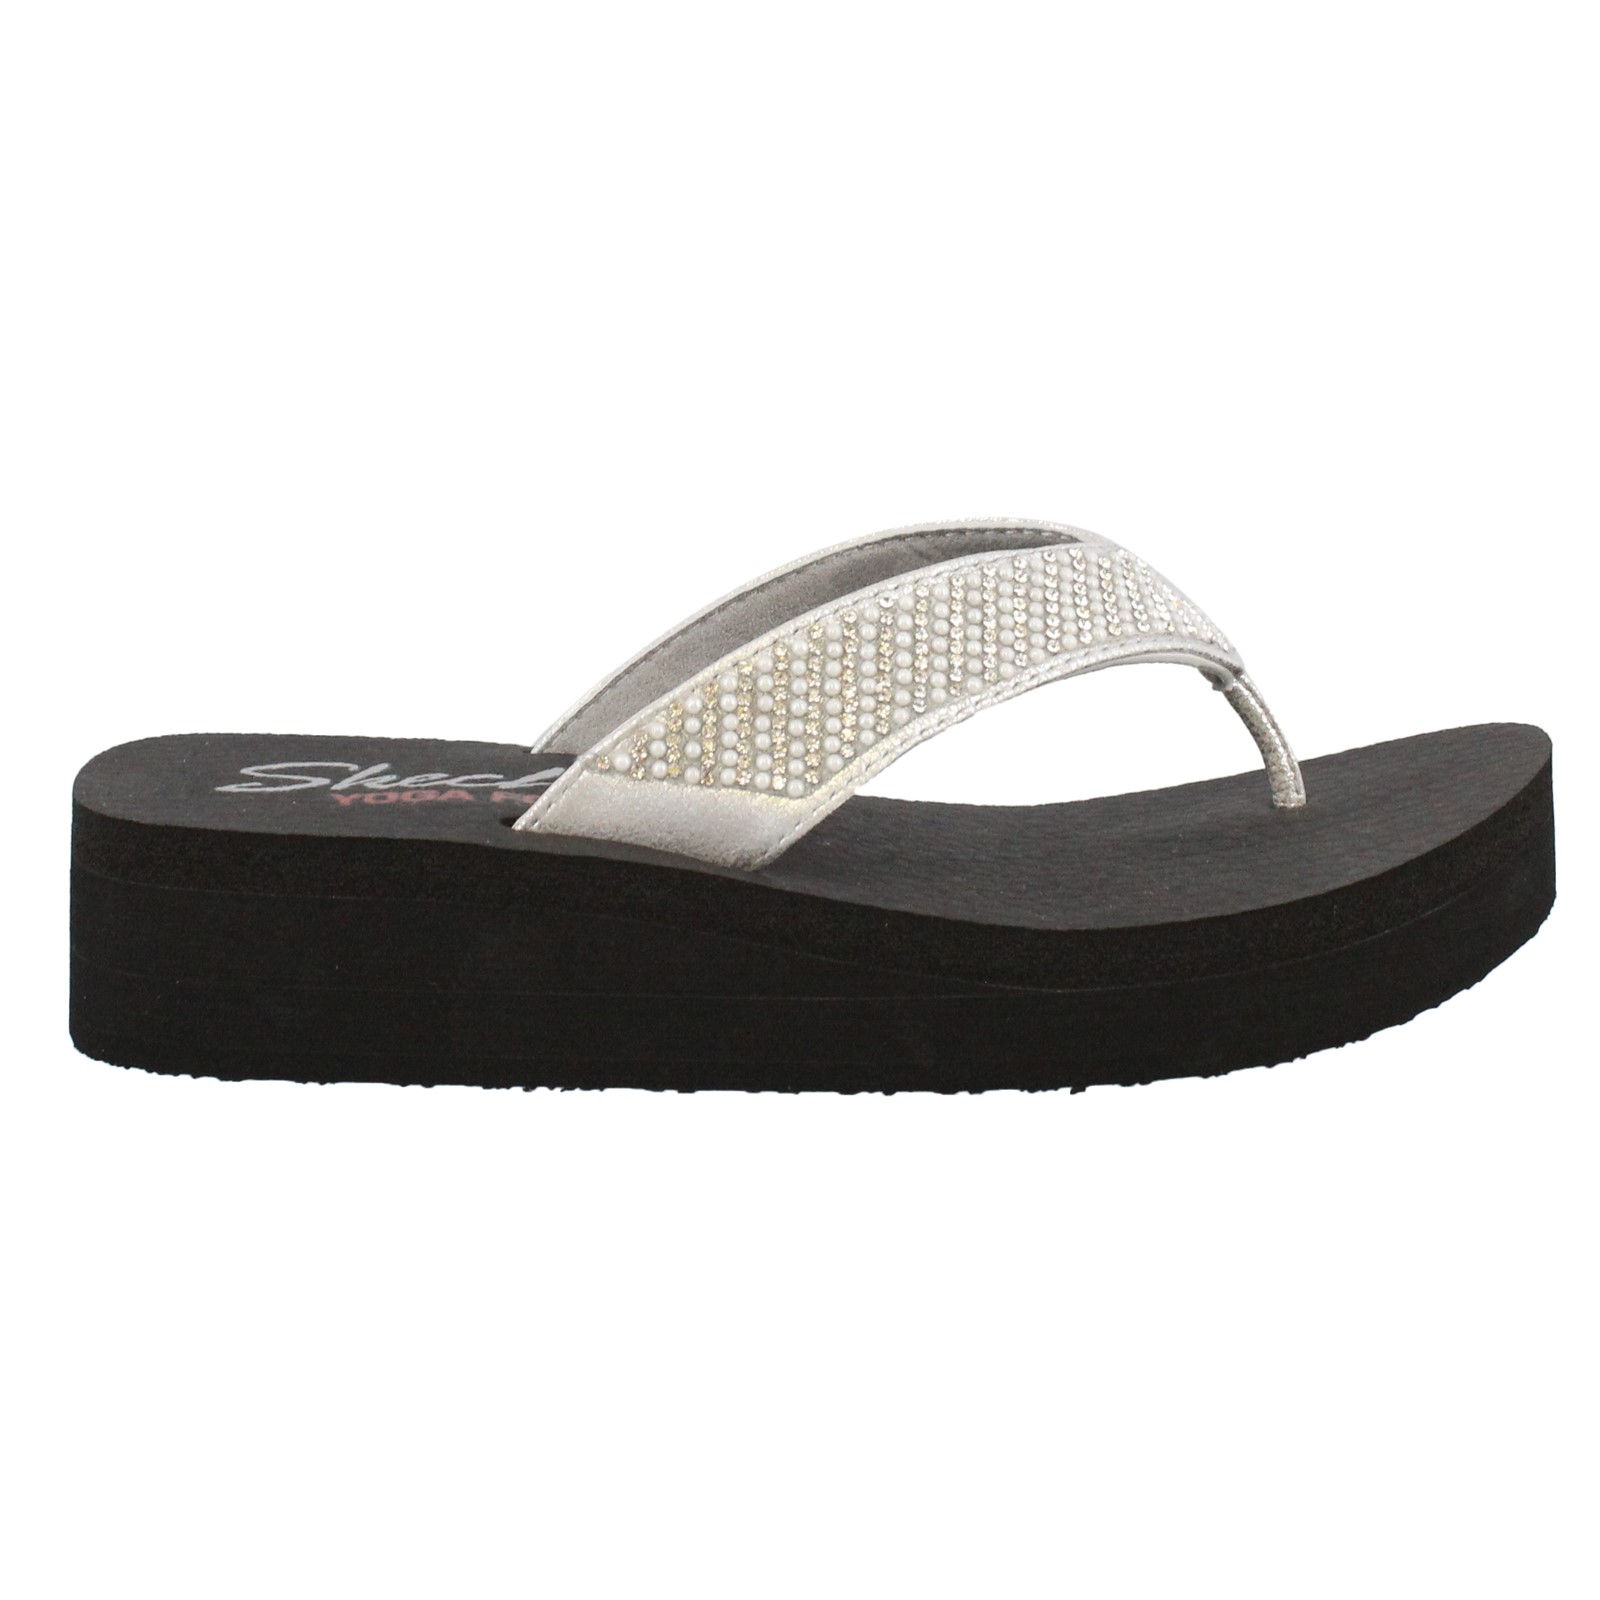 Women's Skechers, Vinyasa Thong Sandals